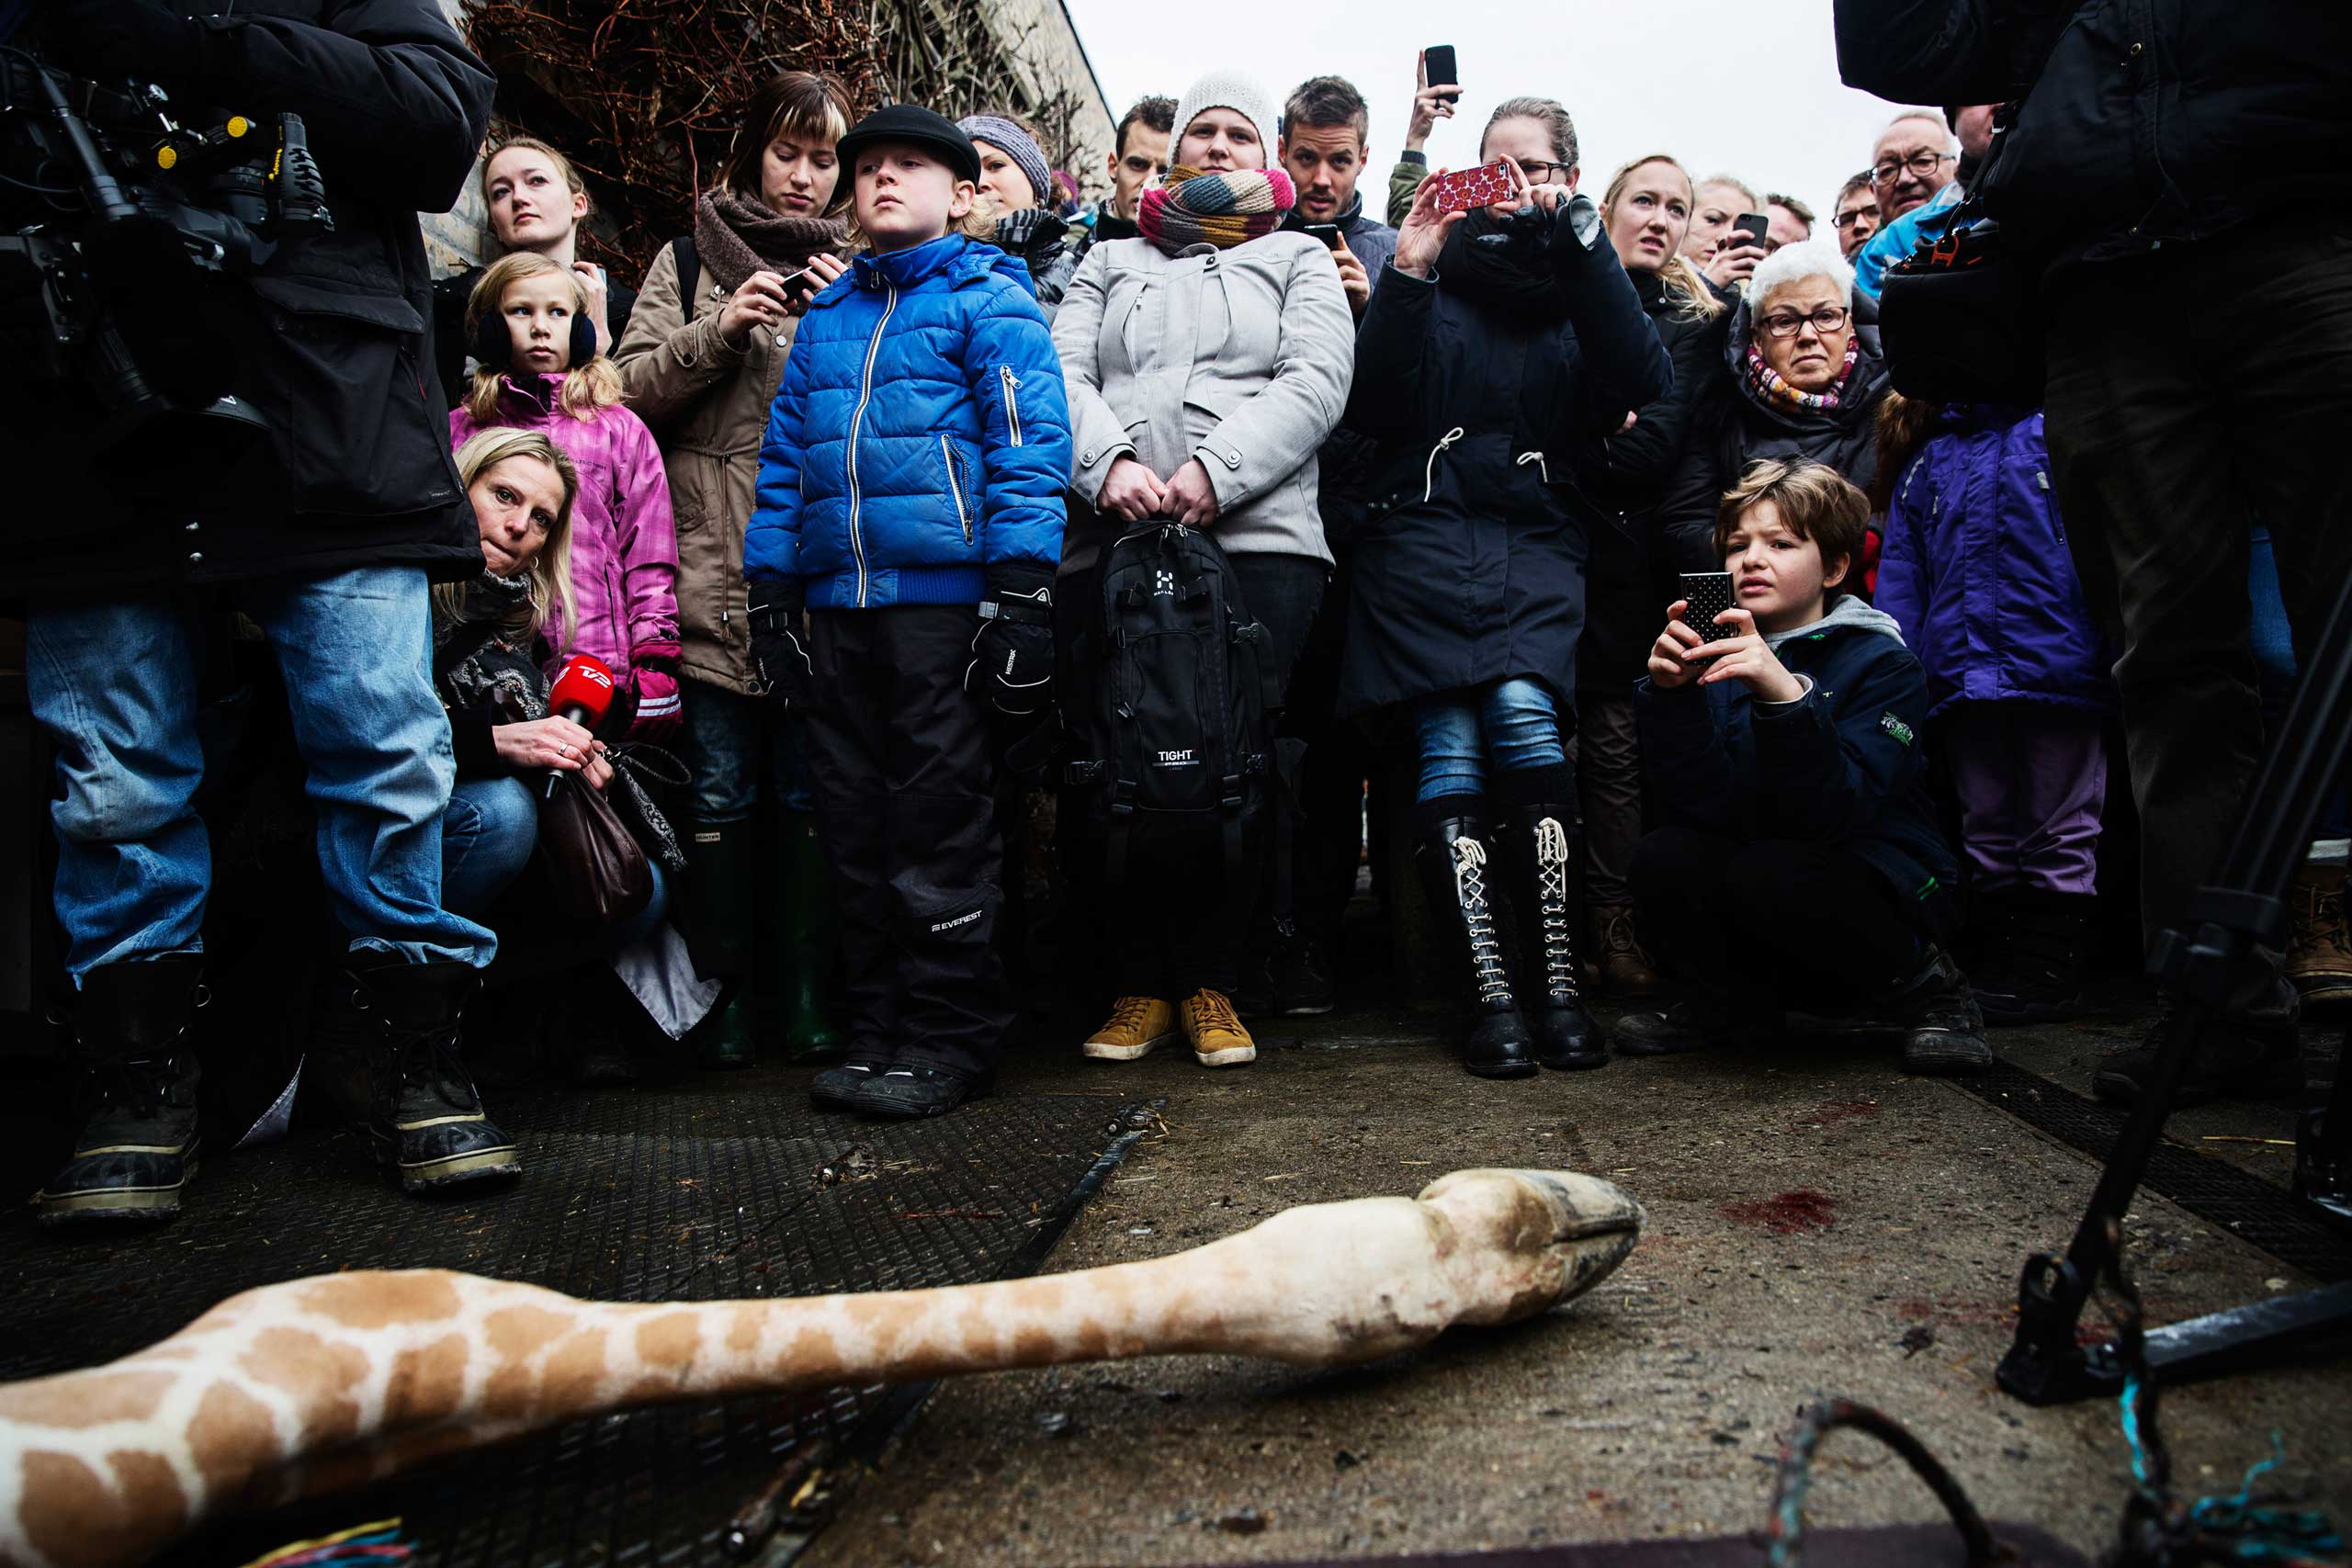 People look at the carcass of the giraffe Marius after it was killed in Copenhagen Zoo, Feb. 9, 2014.